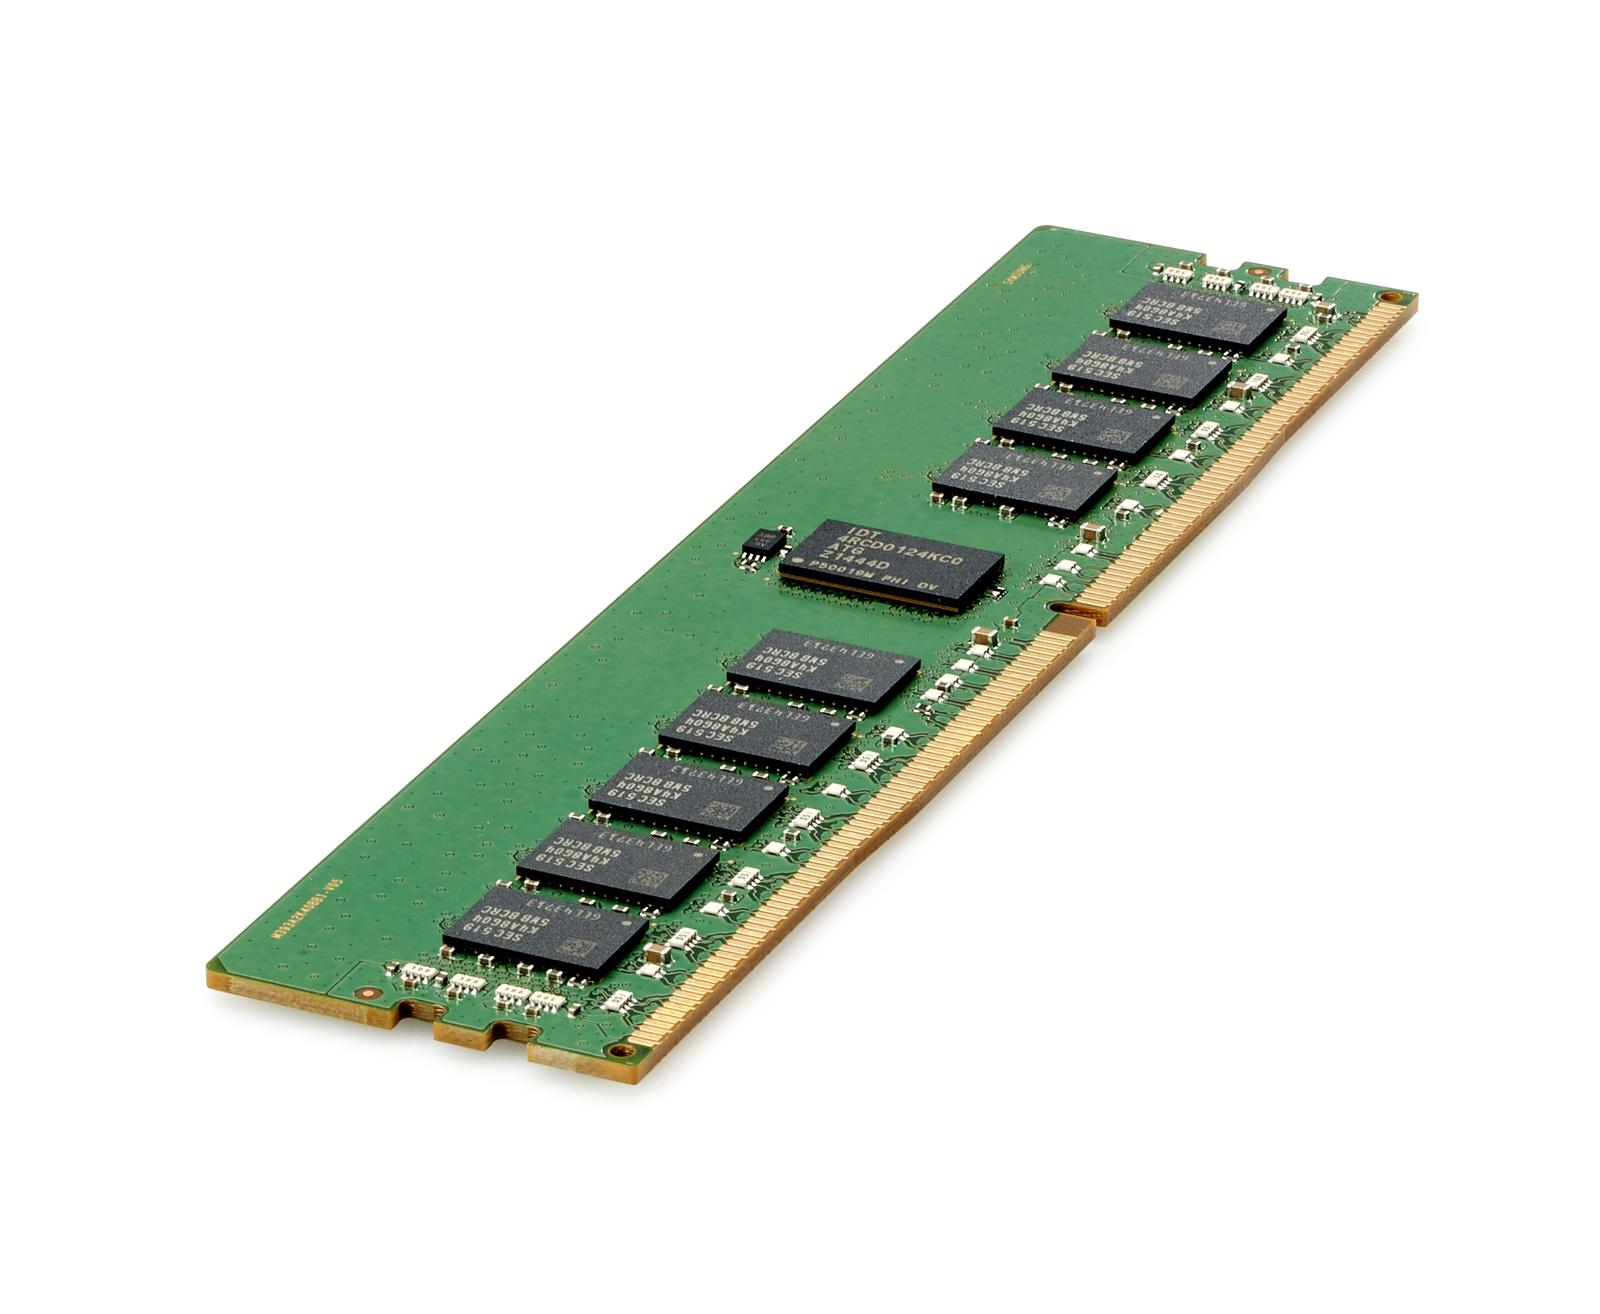 HEWLETT PACKARD ENTERPRISE 16 GB (1 x 16 GB) - DDR4-2933/PC4-23400 DDR4 SDRAM - CL21 - 1.20V